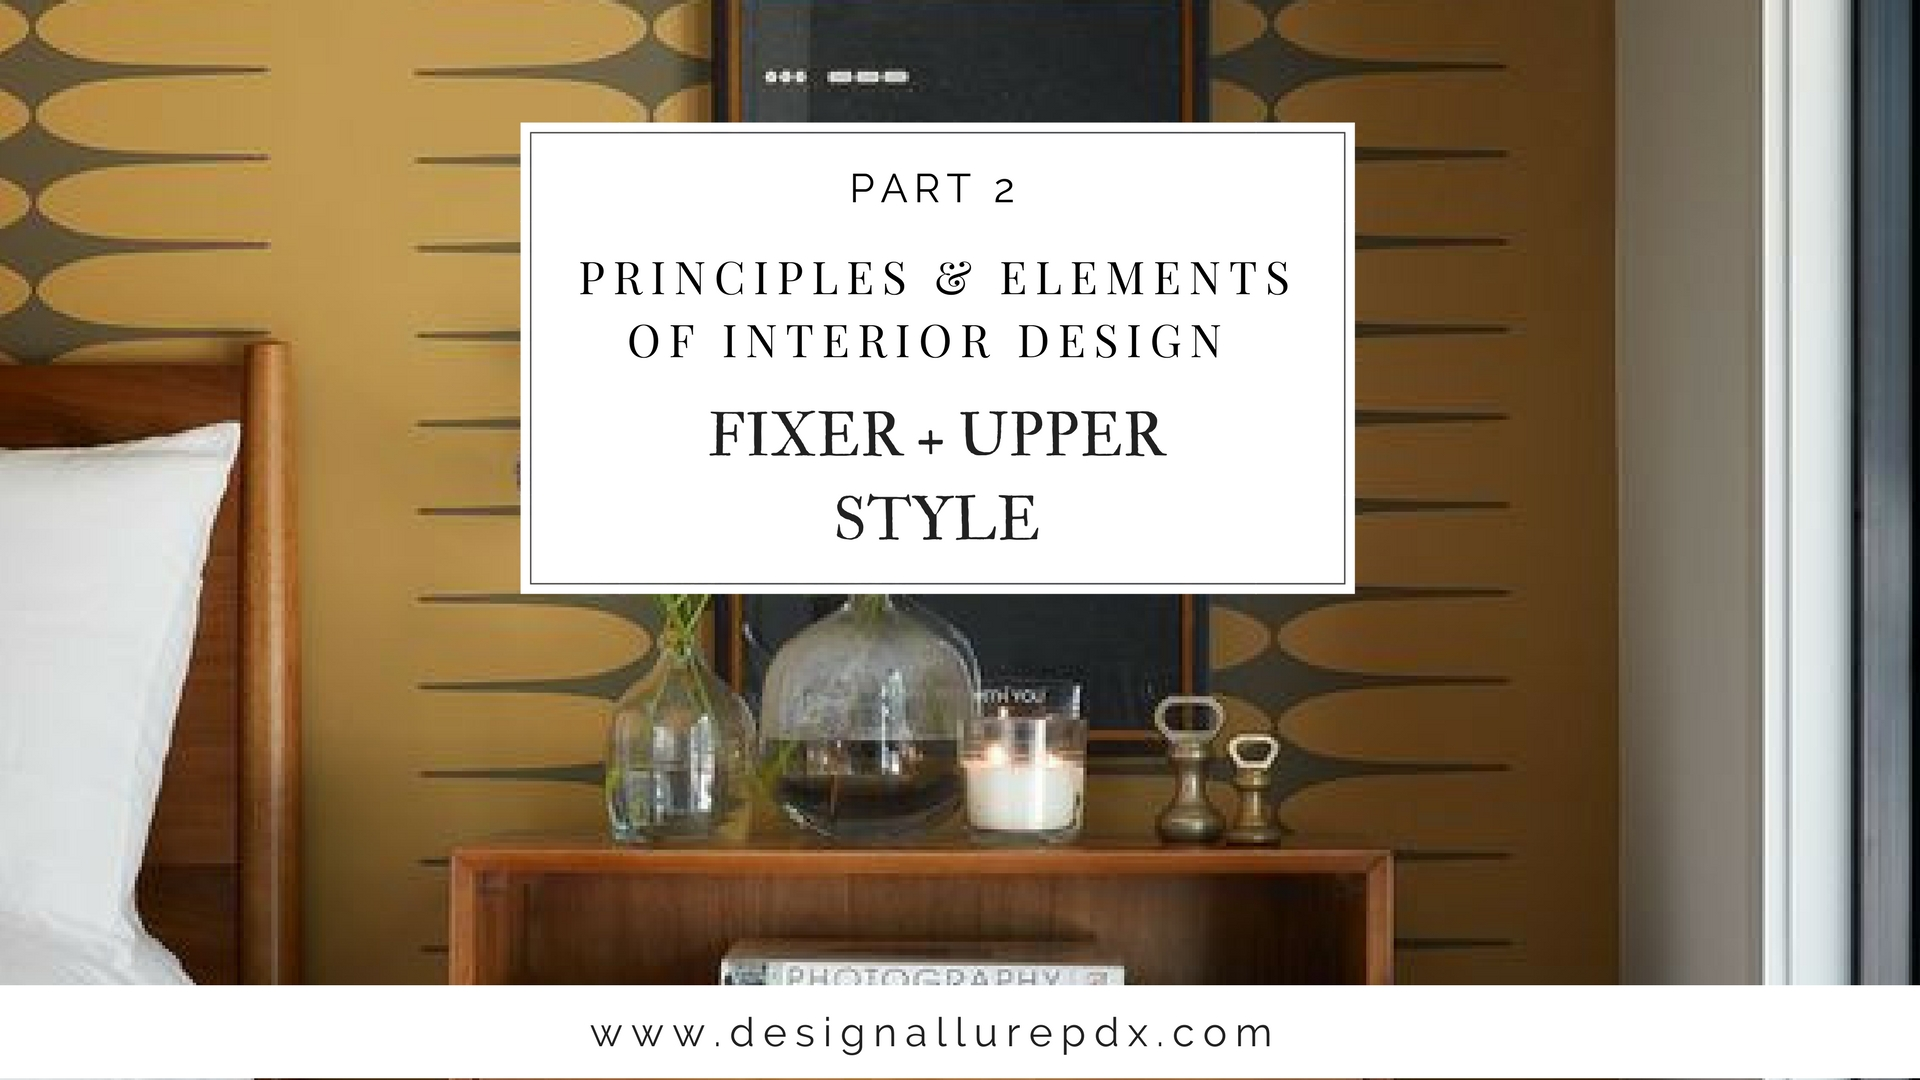 Principles U0026 Elements Of Interior Design Pt 2 L Residential Interior  Decorator L Portland, Lake Oswego, Beaverton U0026 Hillsboro